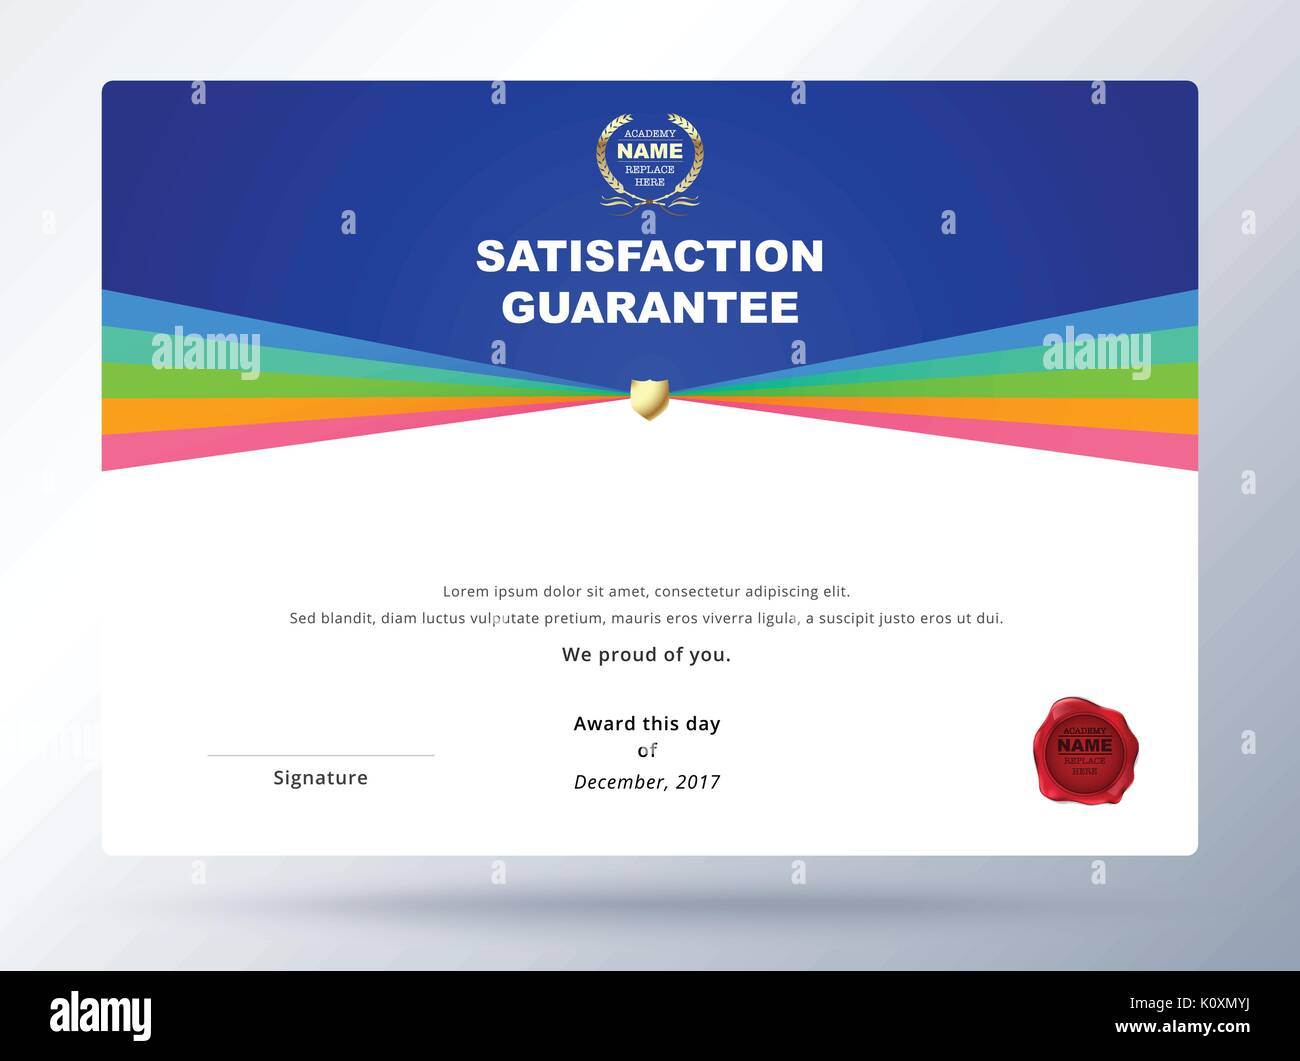 Elegant appreciation certificate template design stock photos satisfaction guarantee template design with simple concept certificate template design stock image yelopaper Images